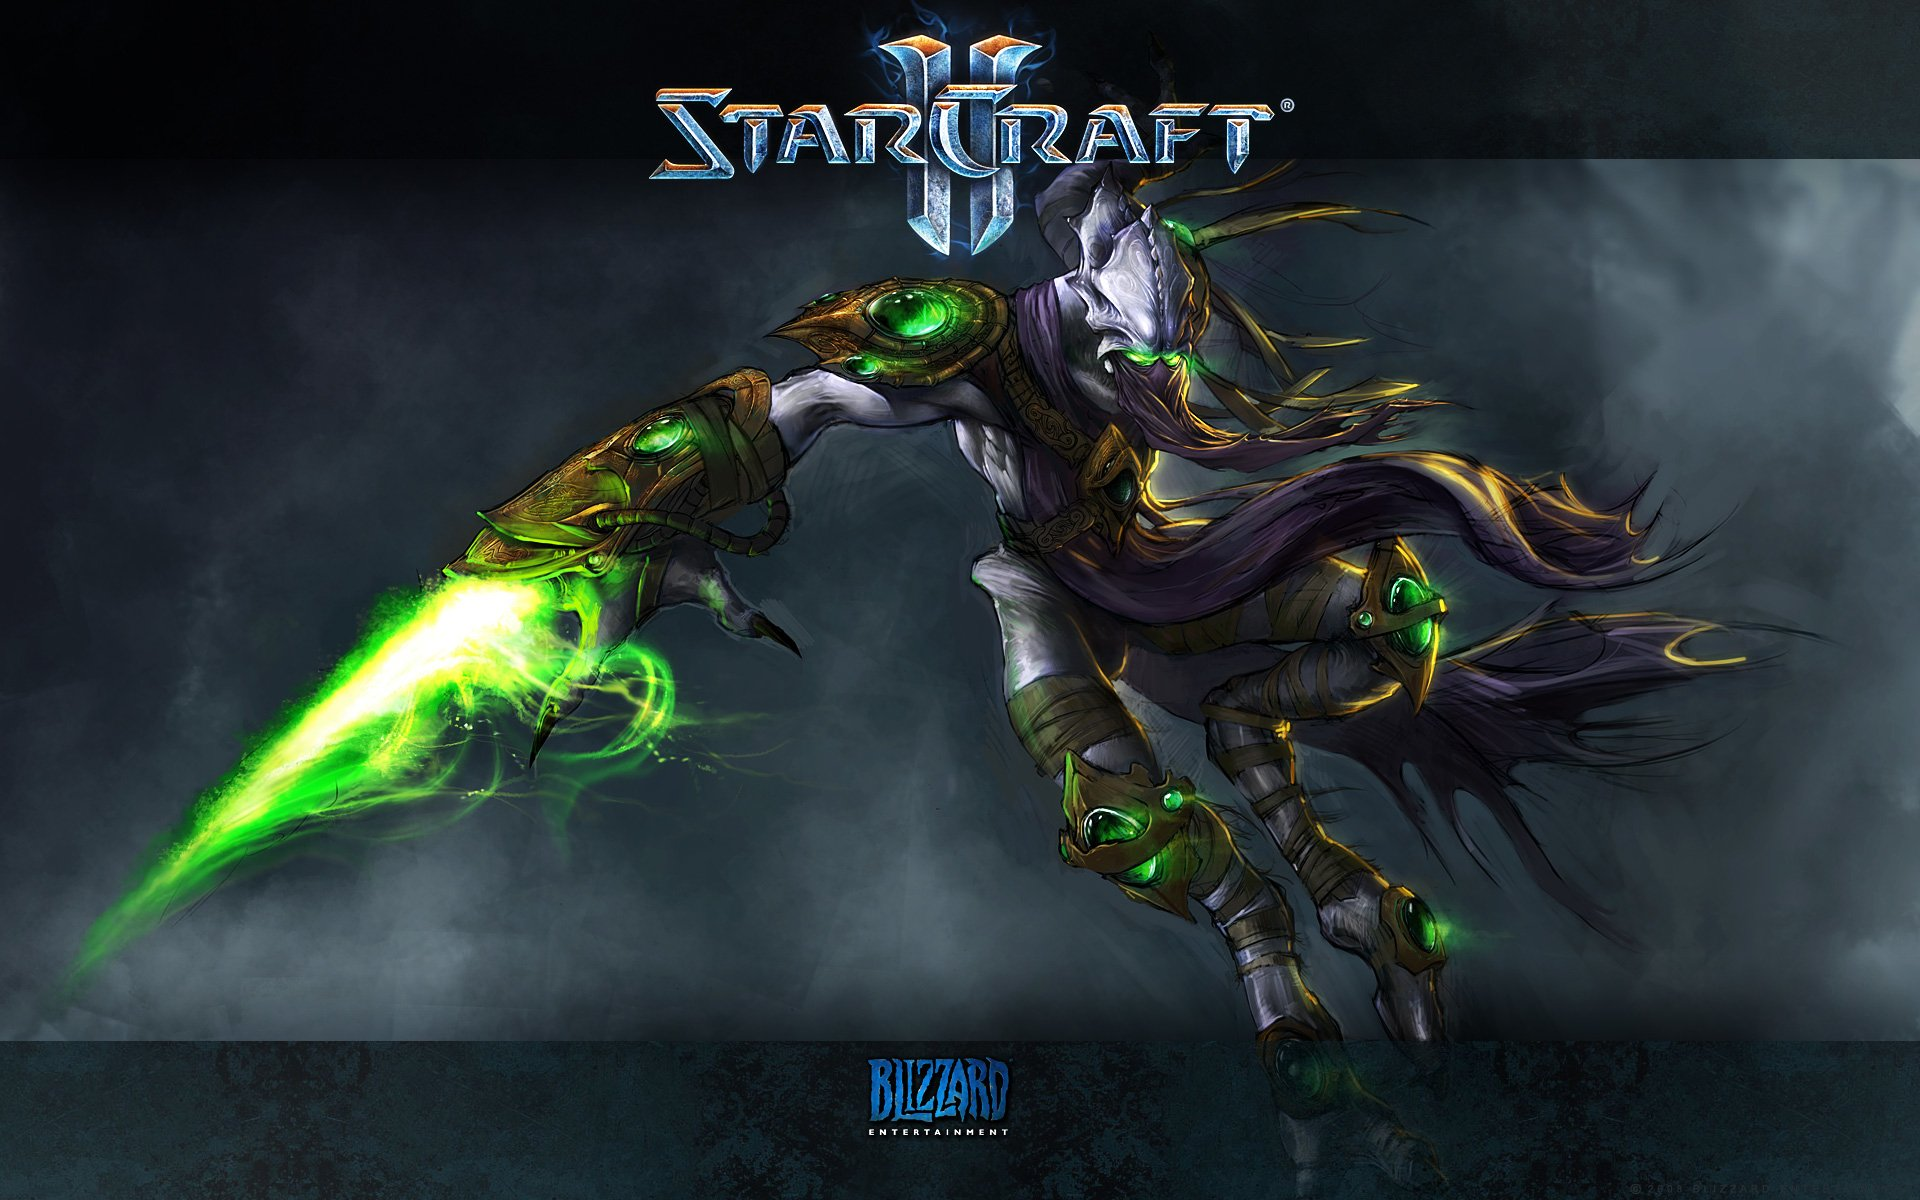 171 Starcraft Hd Wallpapers Background Images Wallpaper